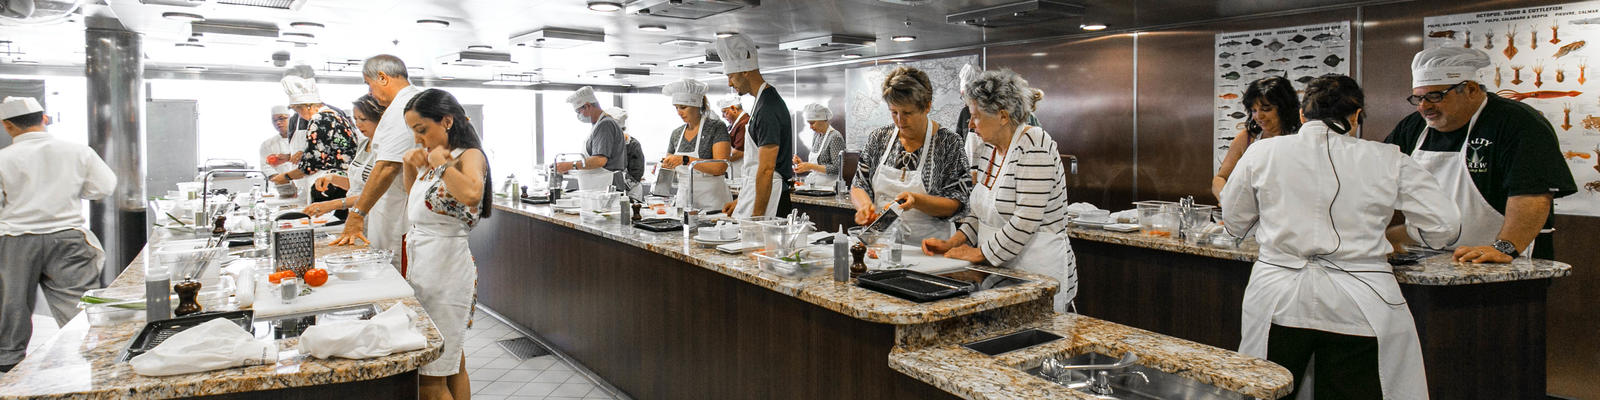 Culinary Center on Oceania's Riviera (Photo: Cruise Critic)